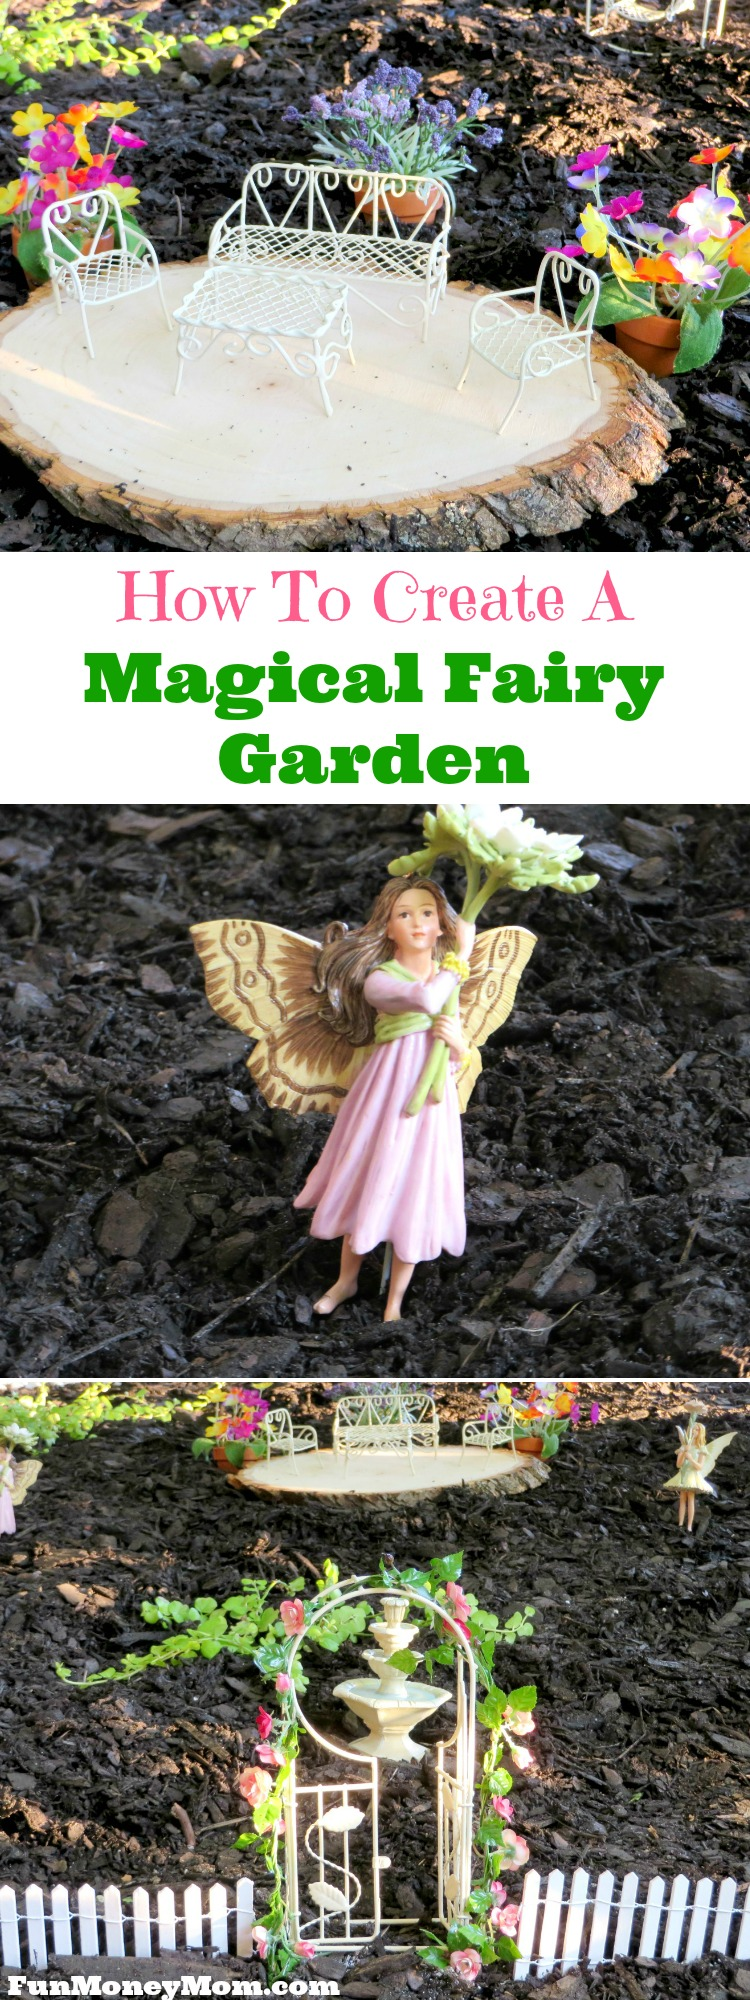 Step up the landscaping a notch and create a beautiful and magical fairy garden that any fairy would love to call home!